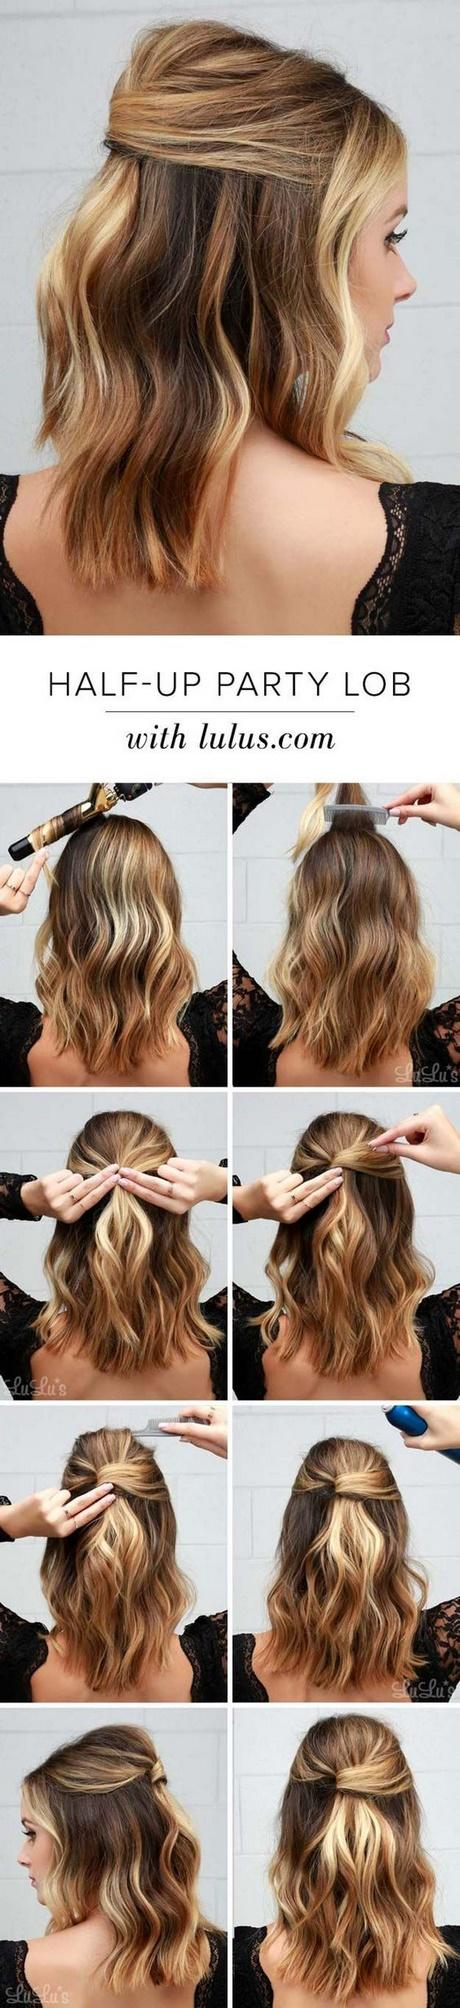 Hairstyles you can do yourself 3 prom or wedding hairstyles you can do yourself youtube solutioingenieria Choice Image